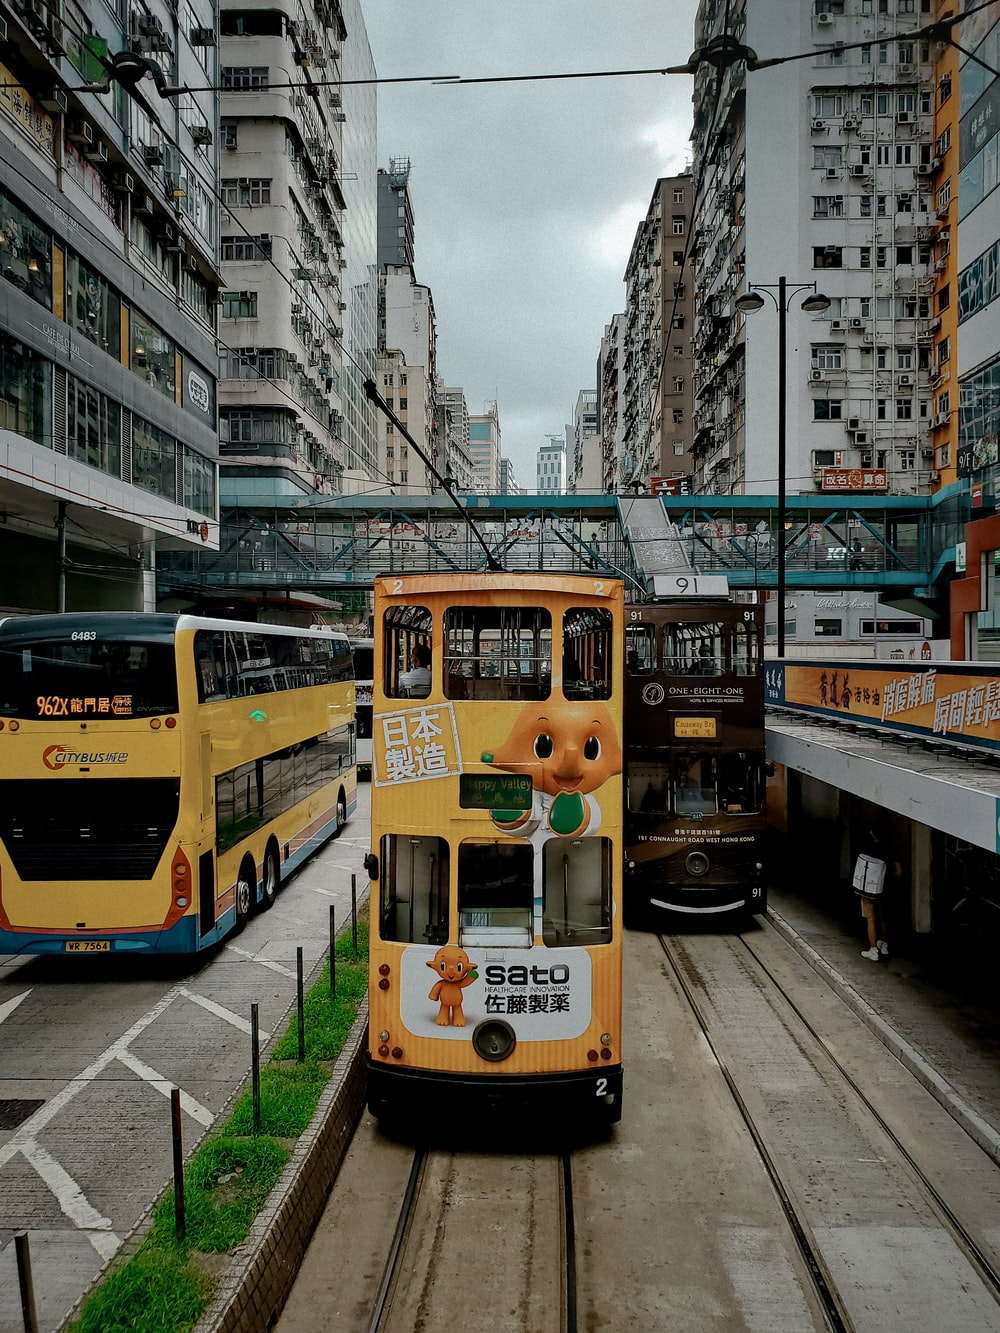 yellow and white tram on road during daytime